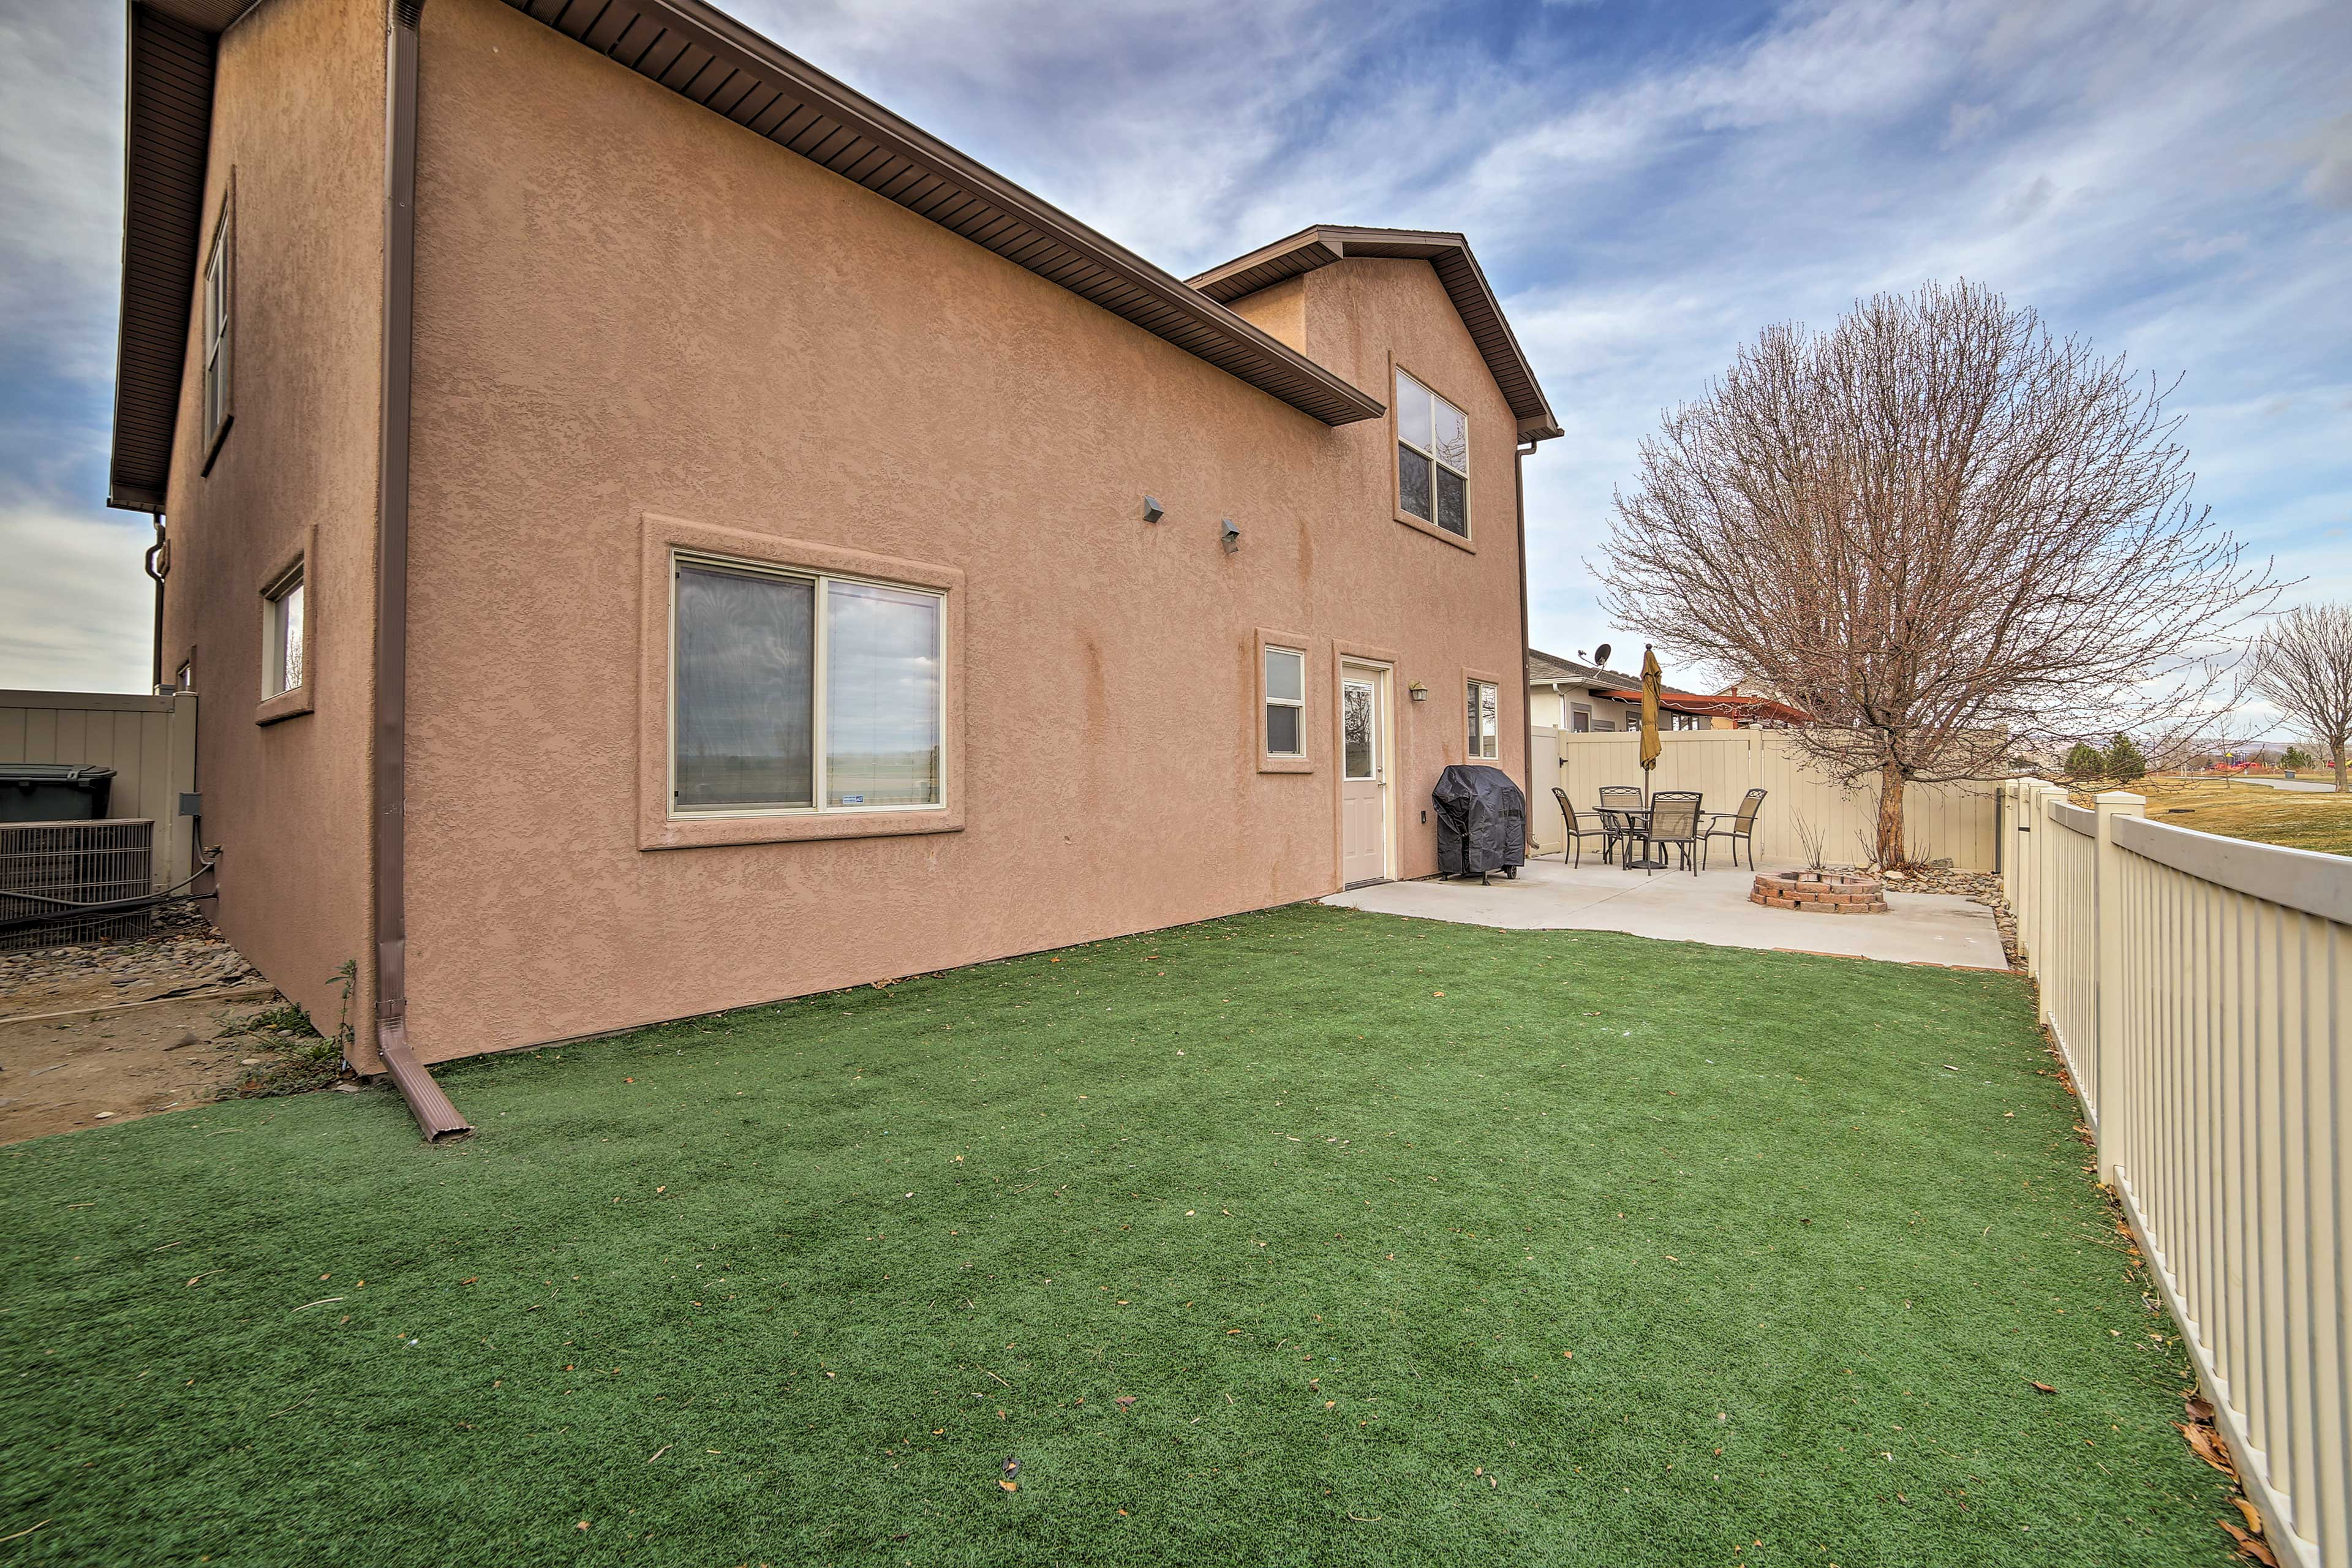 Have some fun playing with your pup in the astro-turf grass yard!